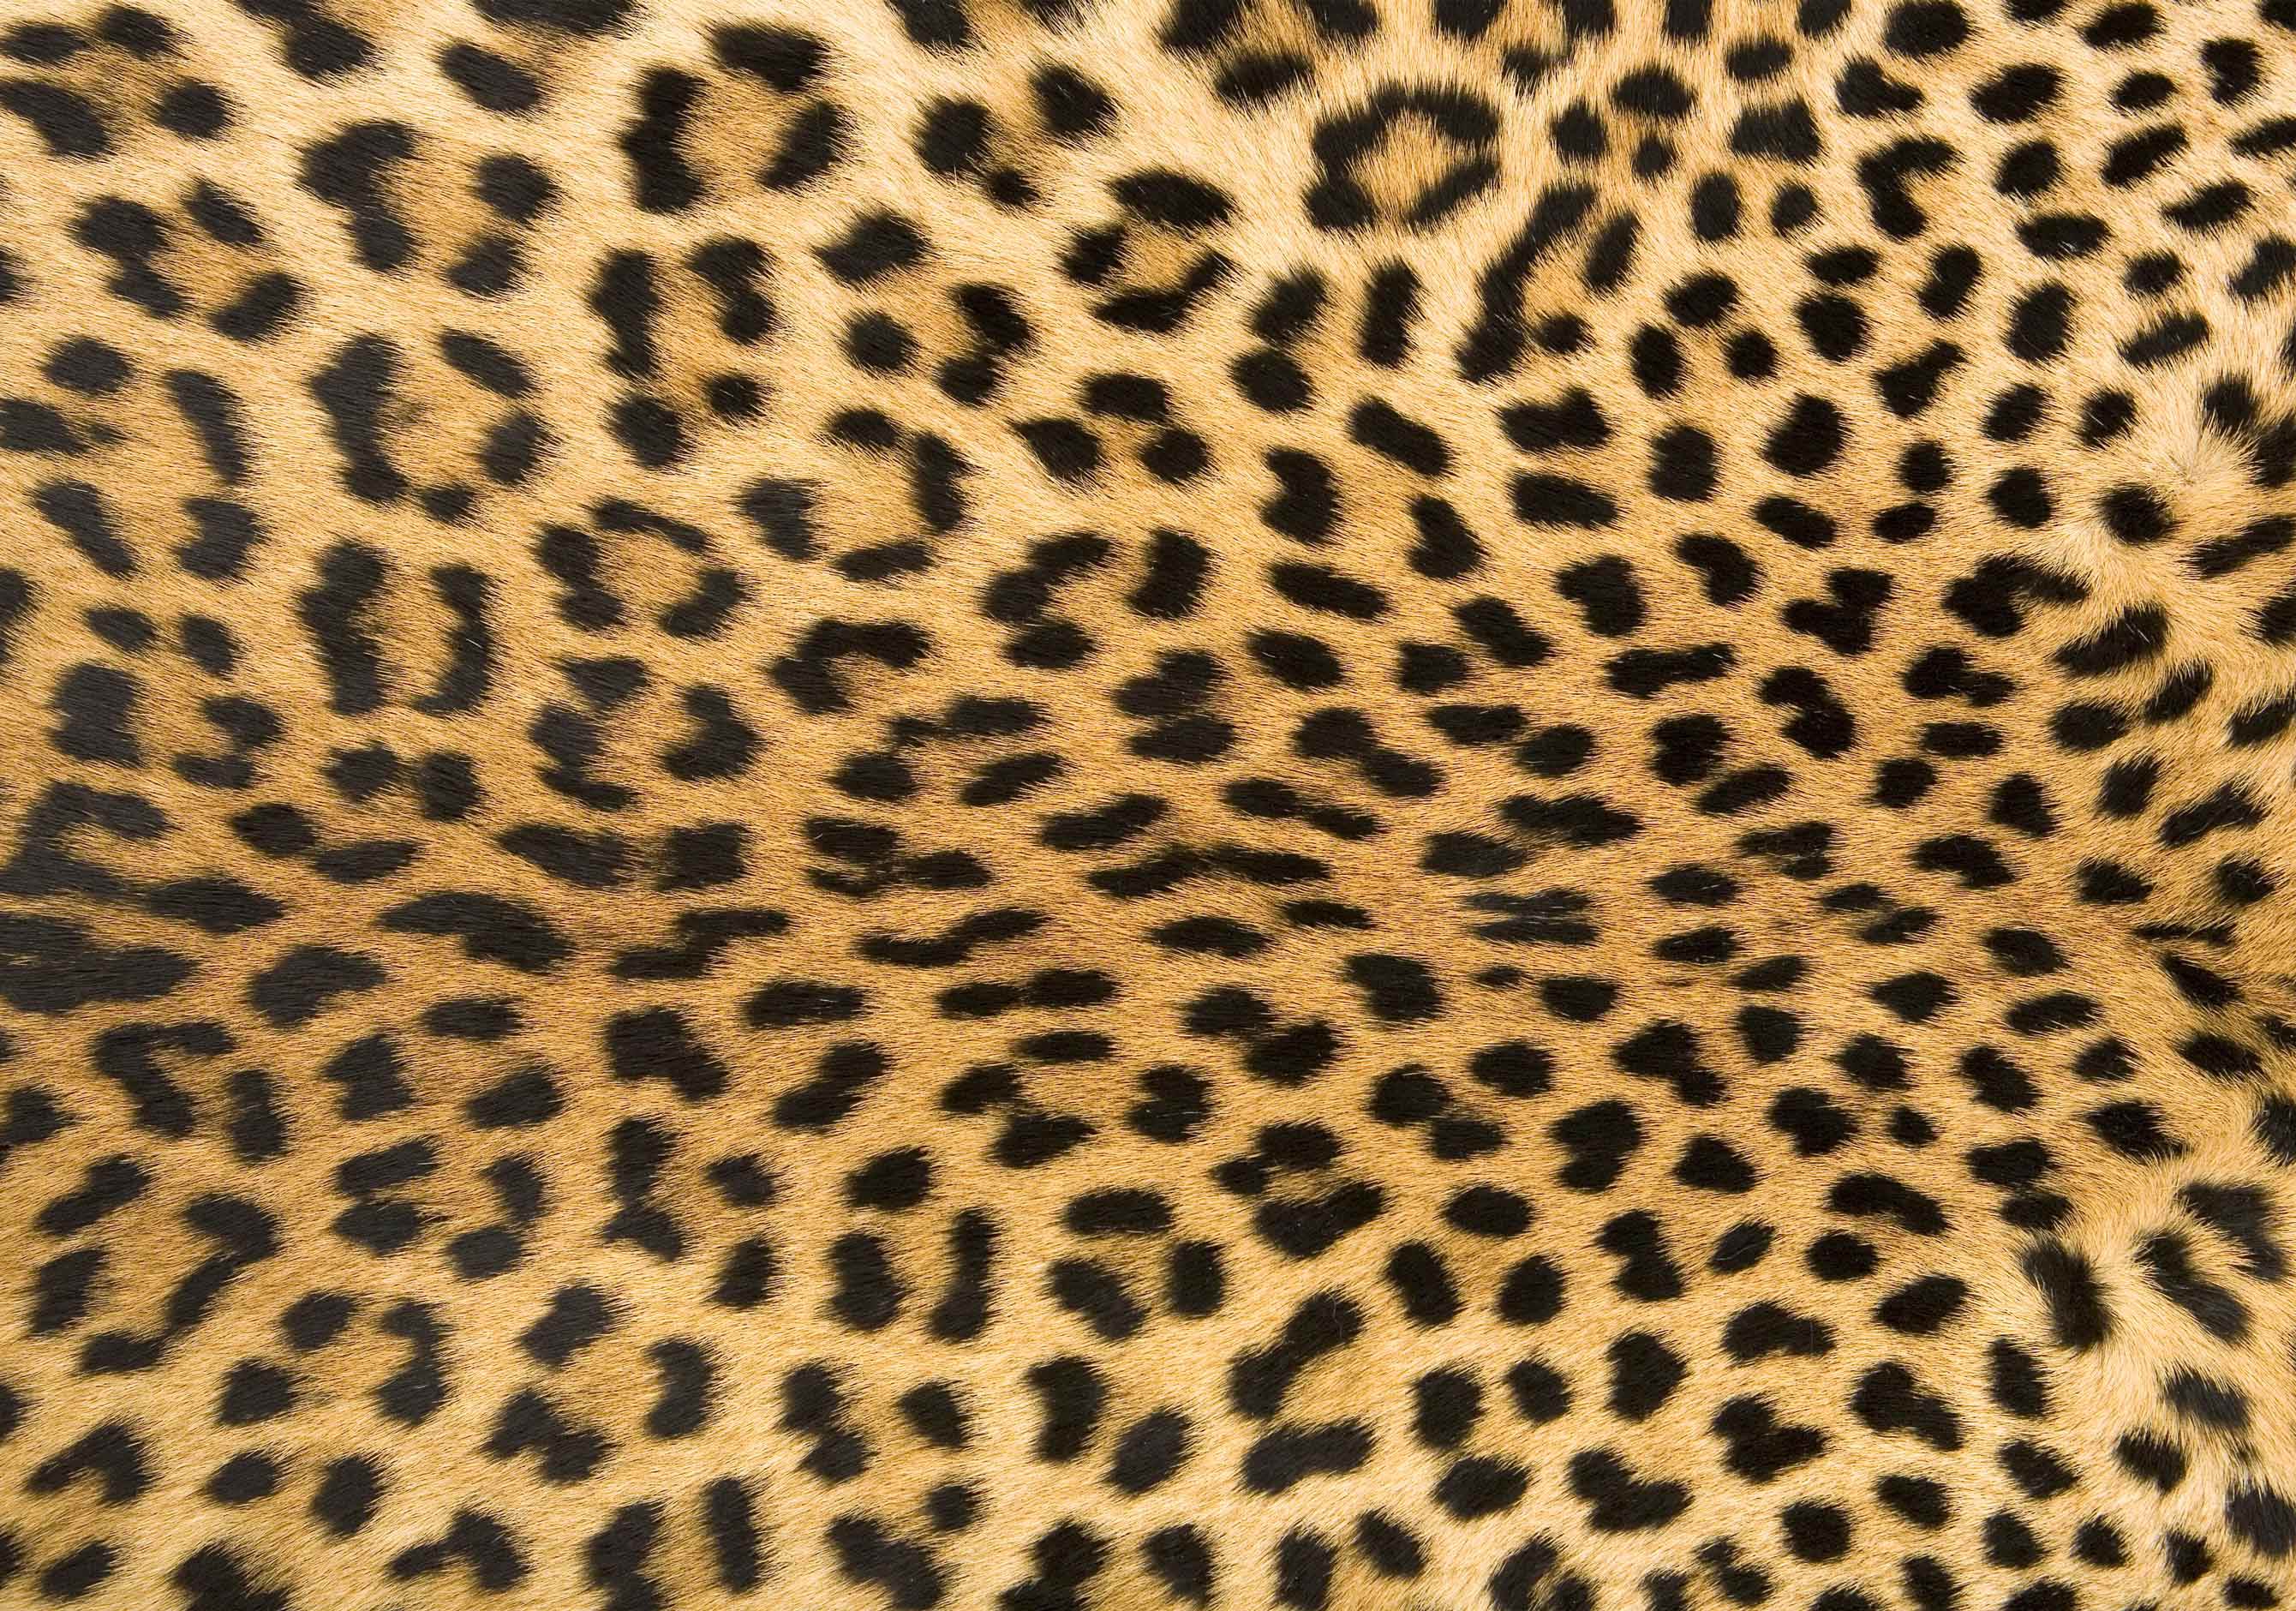 Leopard Print Wallpapers High Quality Download Free